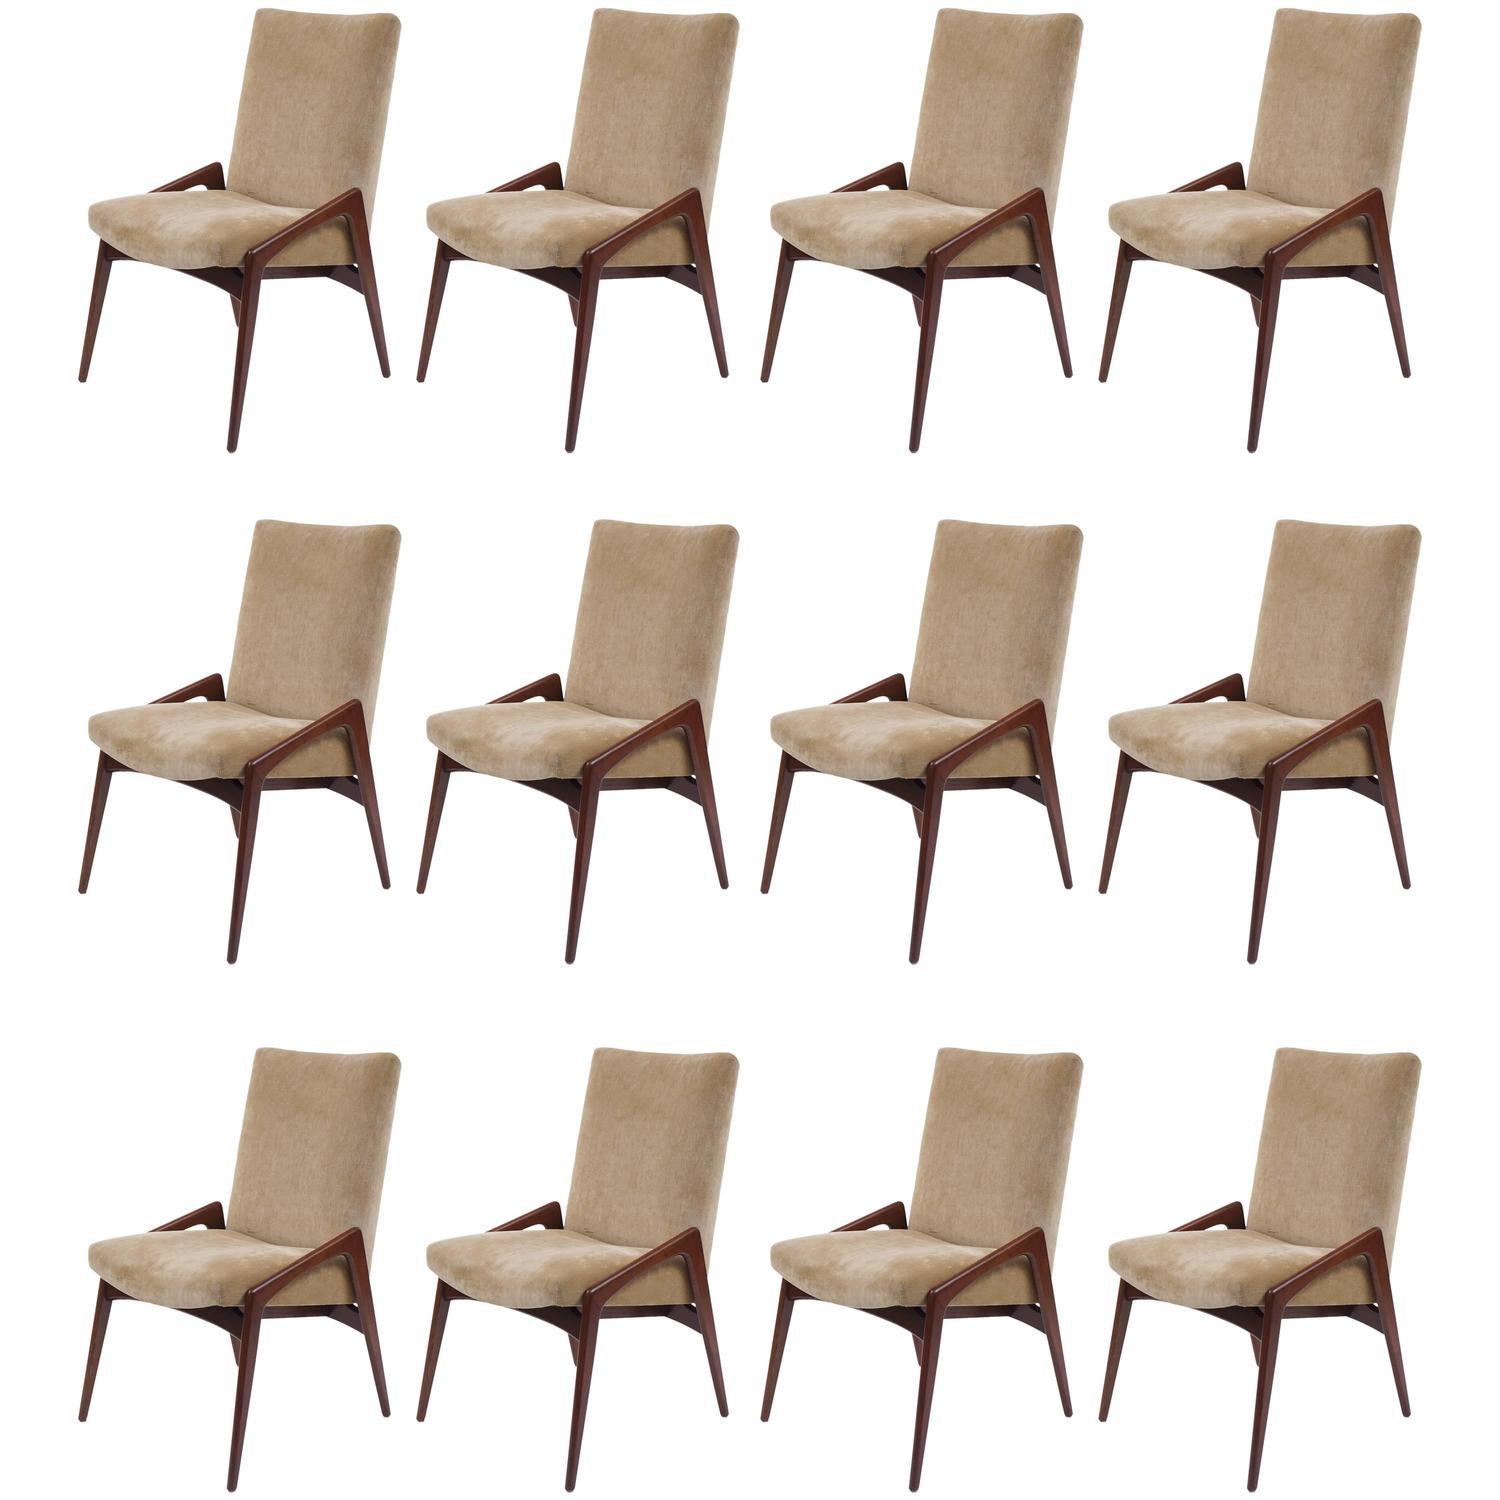 Set Of 12 Mid Century Modern Upholstered Dining Chairs At 1stdibs